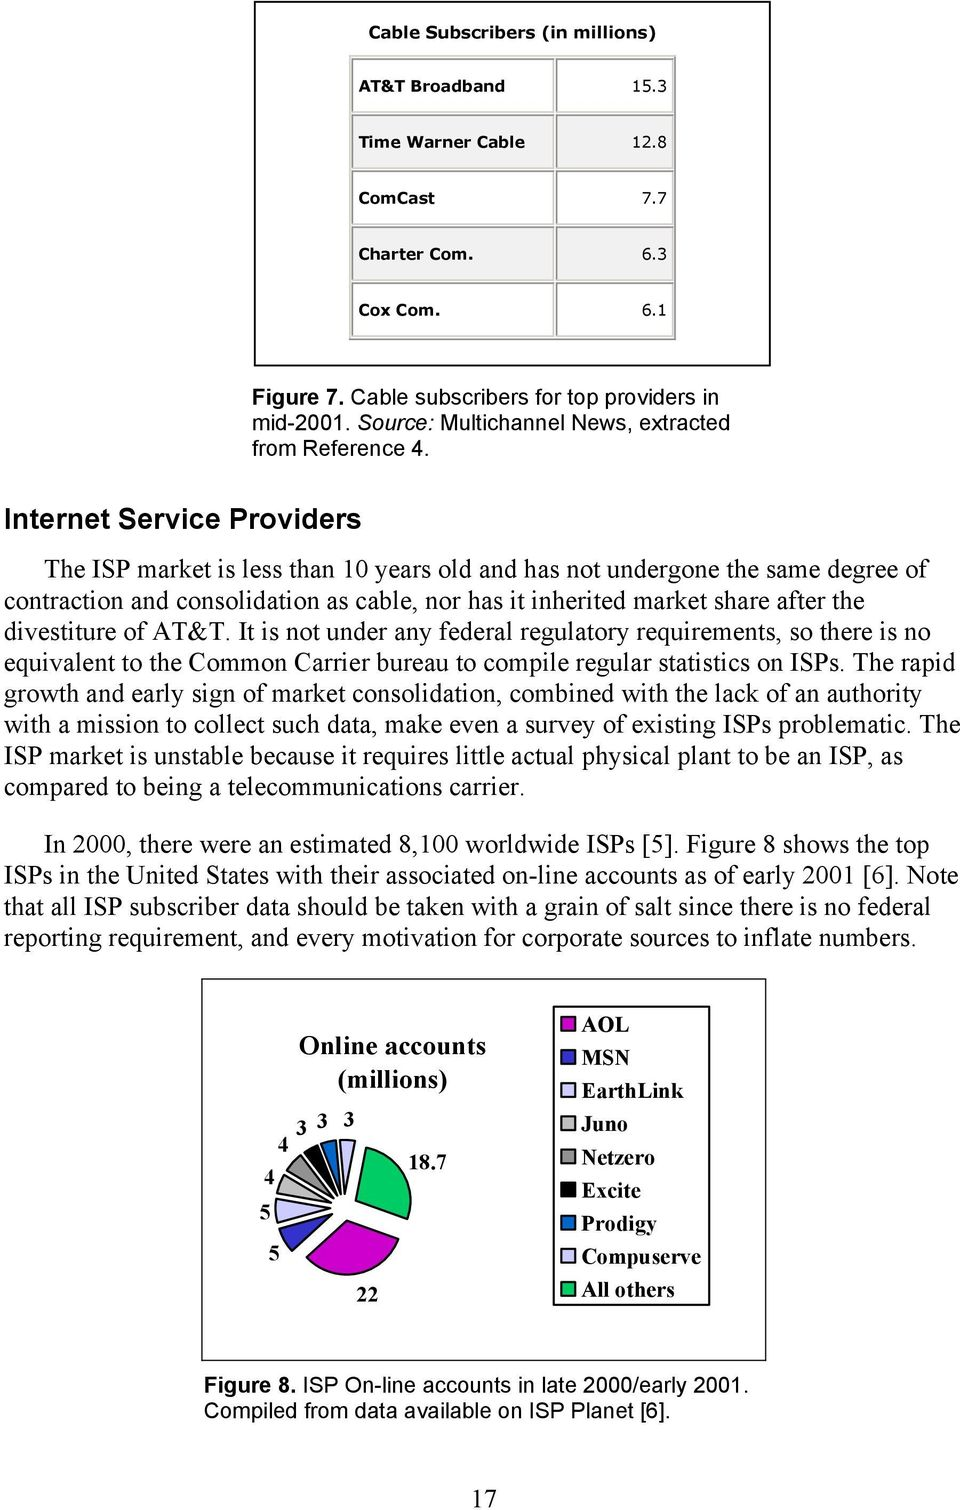 Internet Service Providers The ISP market is less than 10 years old and has not undergone the same degree of contraction and consolidation as cable, nor has it inherited market share after the